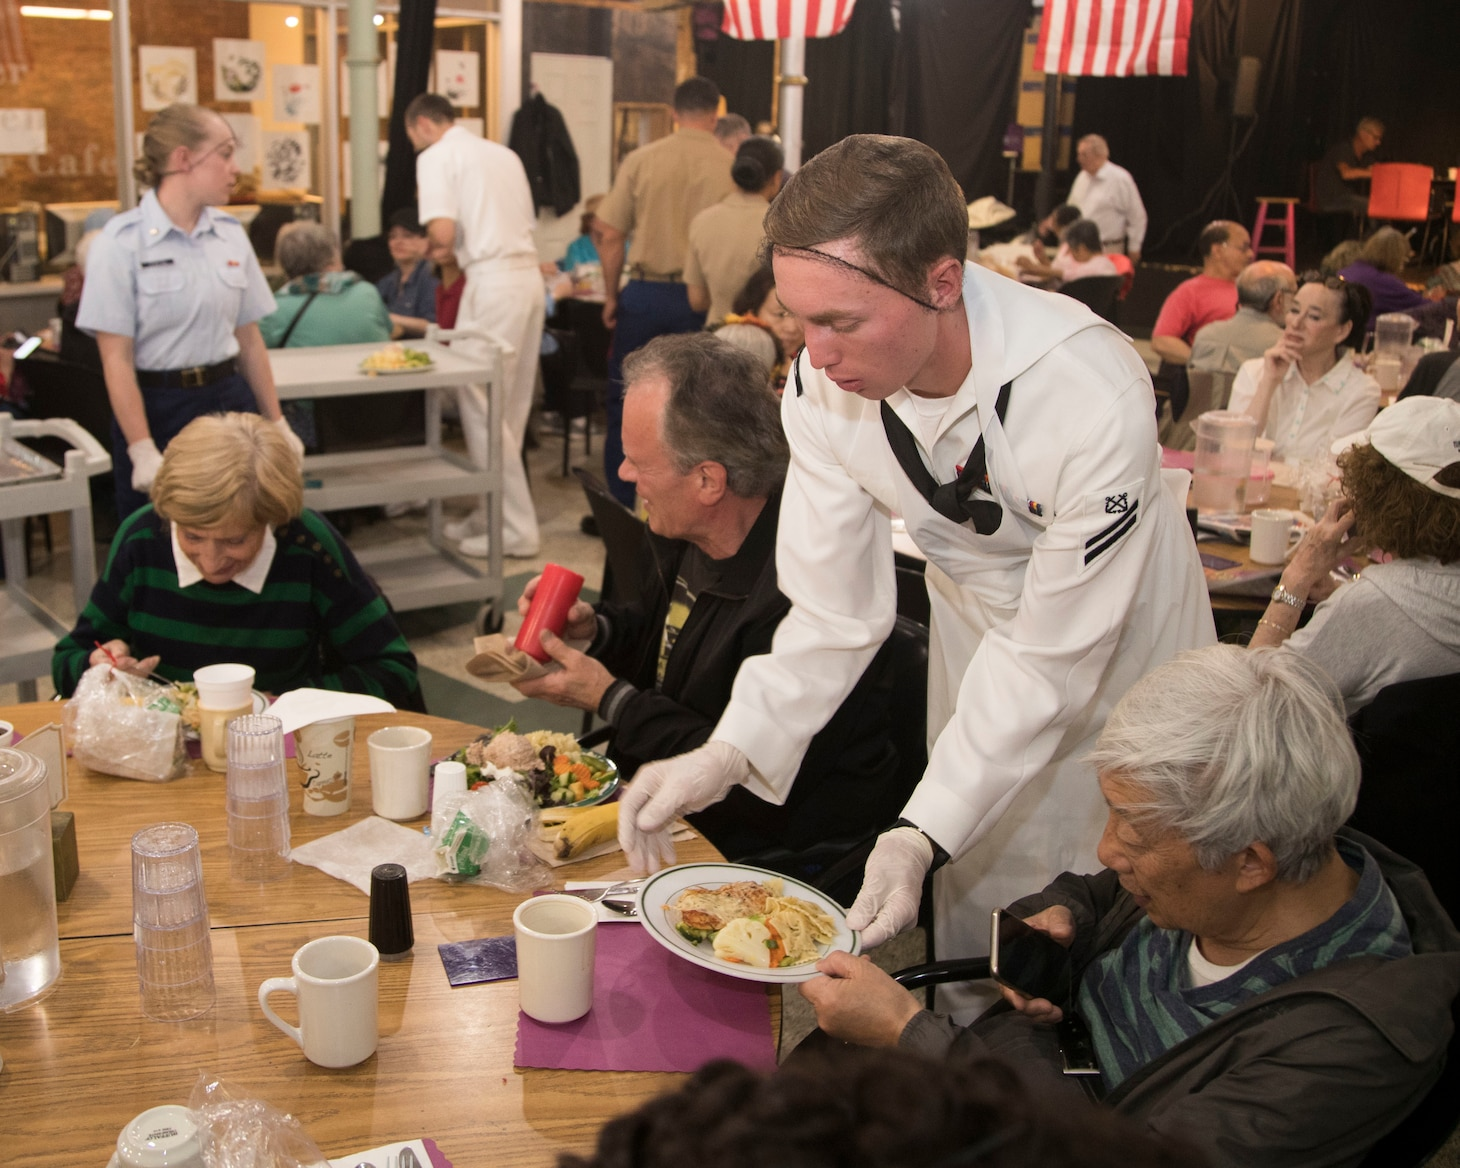 A U.S. Sailor serves food to elderly patients at the at Burden Senior Center during Fleet Week New York 2019.